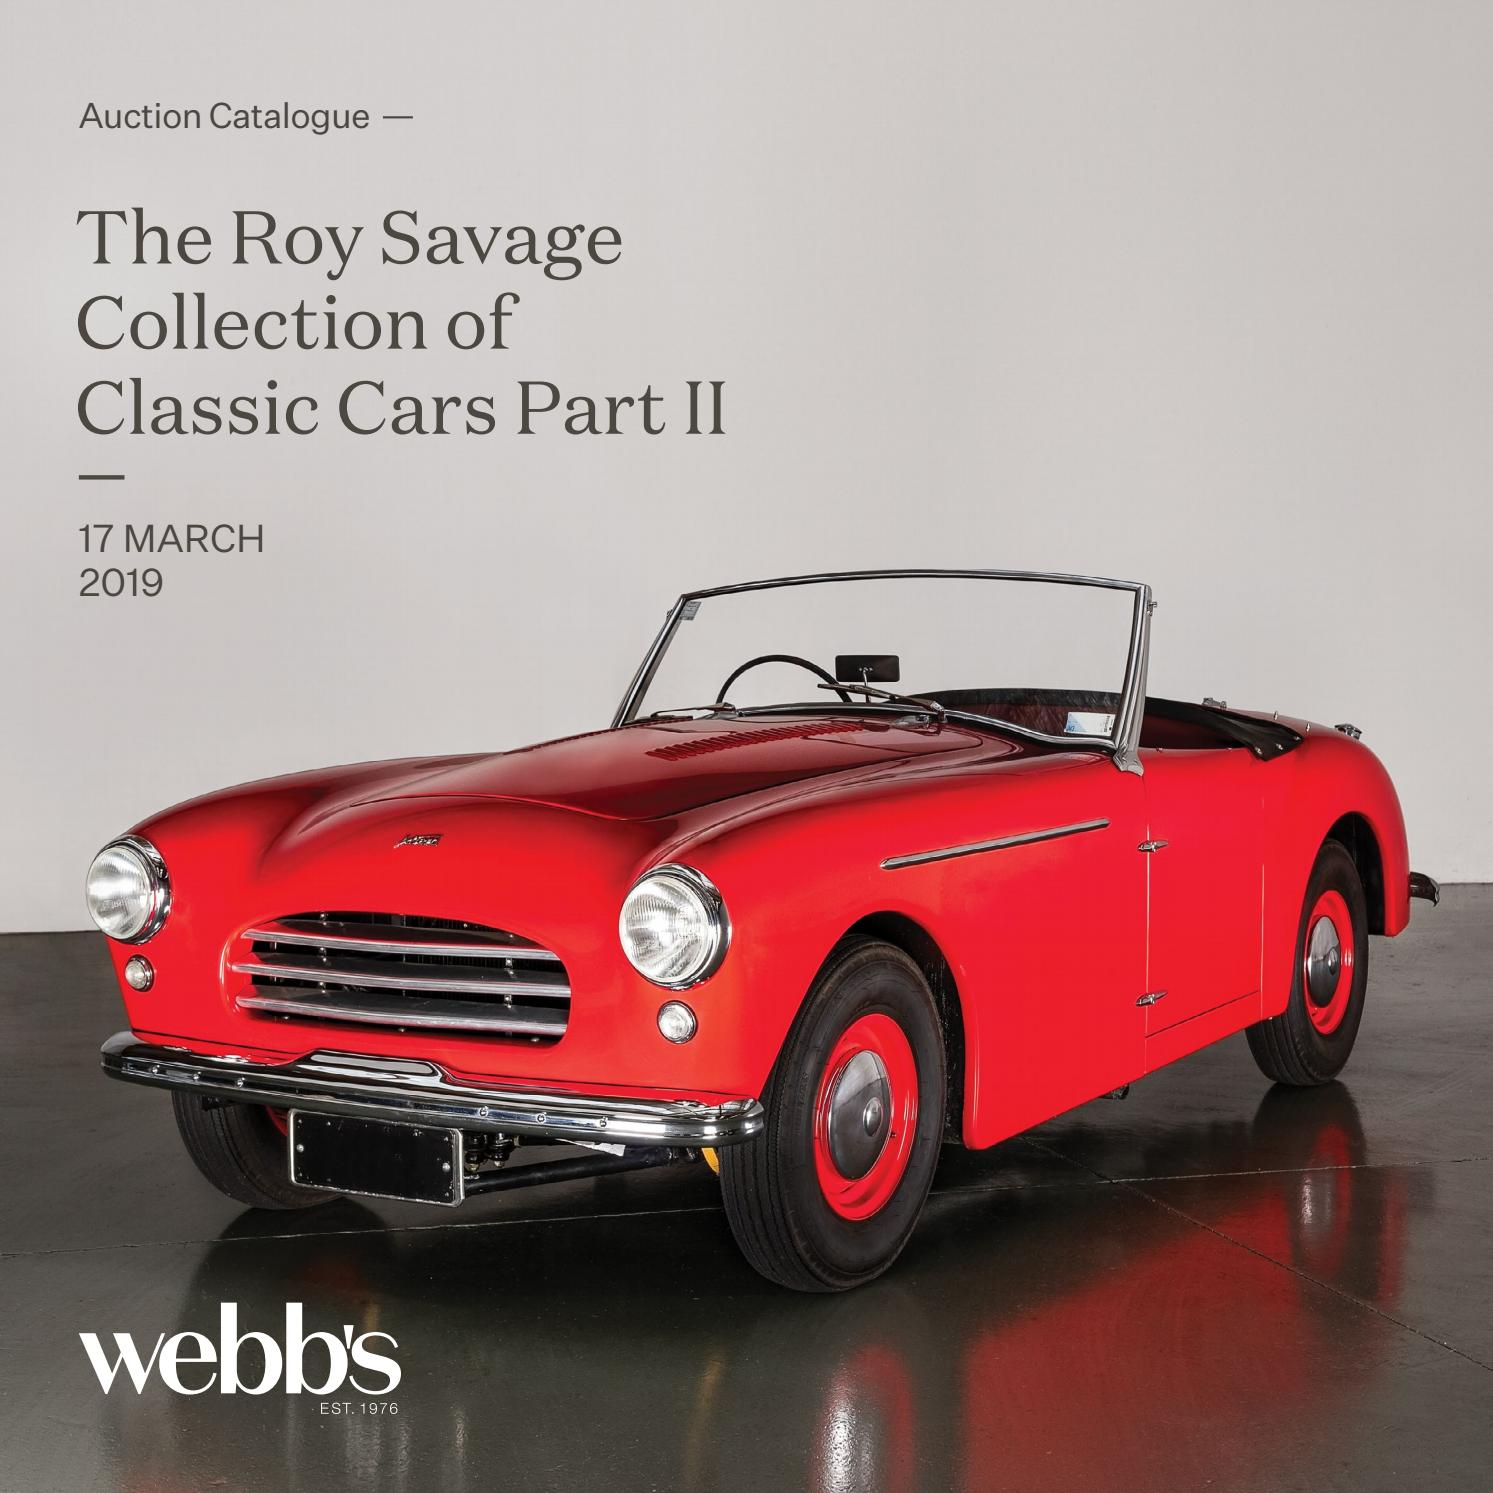 hight resolution of the roy savage collection of classic cars part ii by webb s auction house issuu